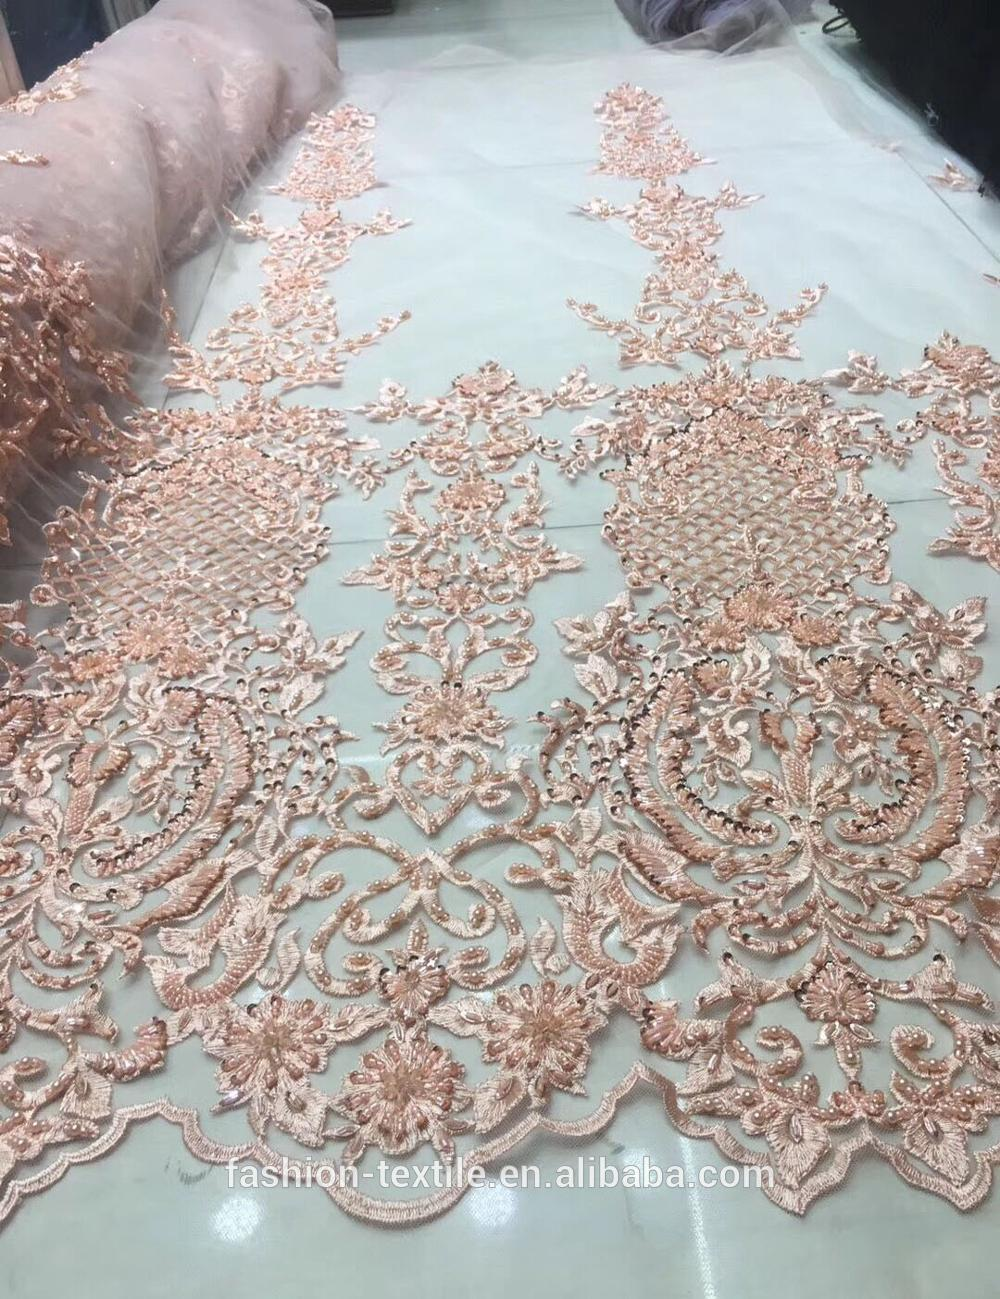 Luxury Laces Top One China Heavy Beaded Lace Fabric Graceful Handwork Lace Dress Fabric For Bridal Buy Lace Dress Fabric Beaded Lace Fabric Laces Top One China Product On Alibaba Com